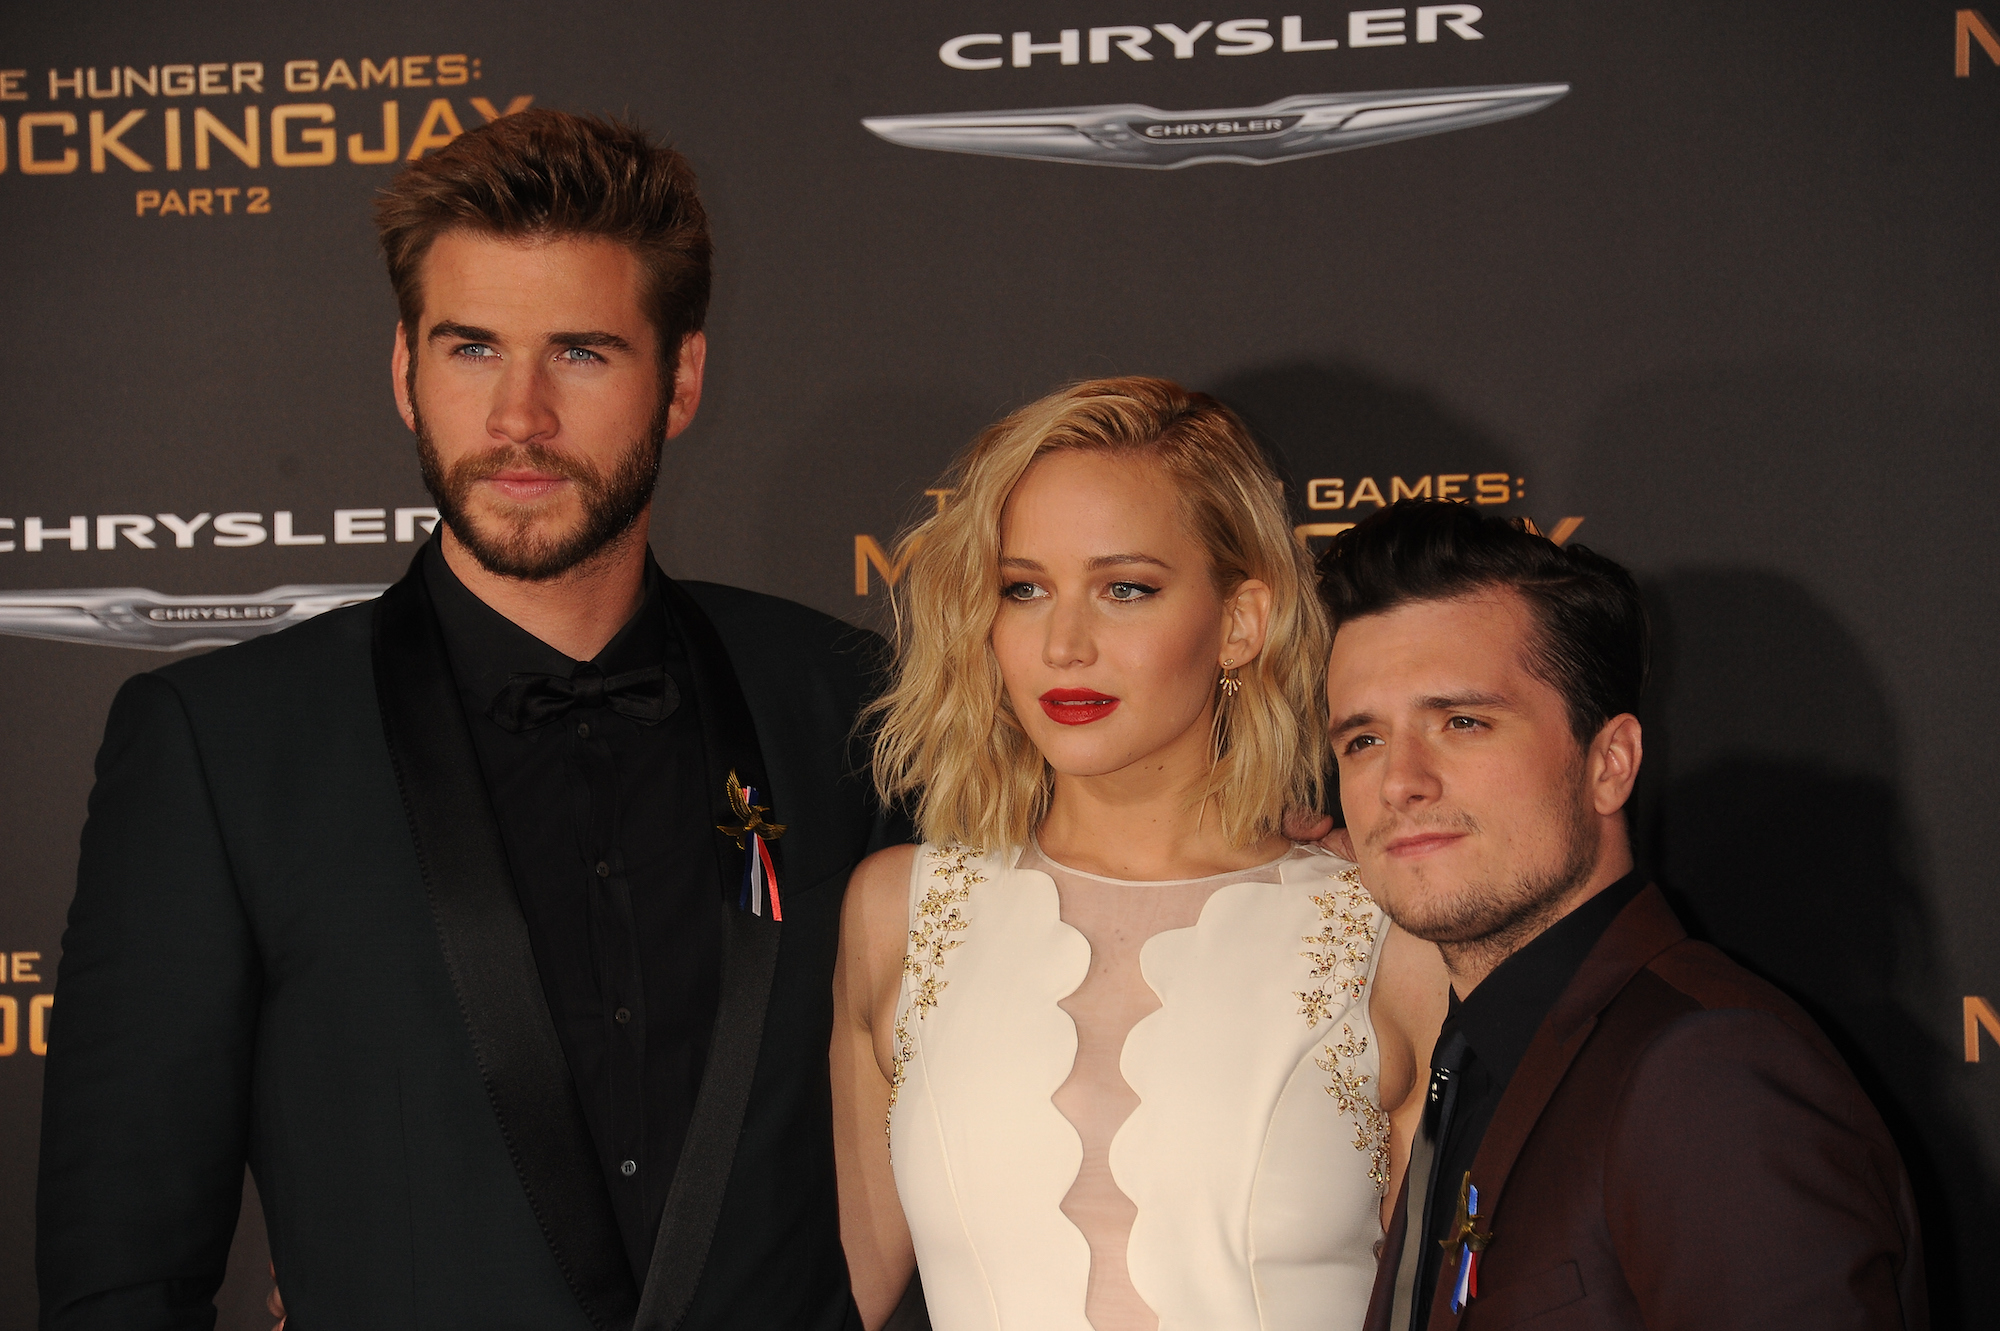 Liam Hemsworth, Jennifer Lawrence, and Josh Hutcherson at the premiere of 'The Hunger Games: Mockingjay - Part 2' at the Microsoft Theater.